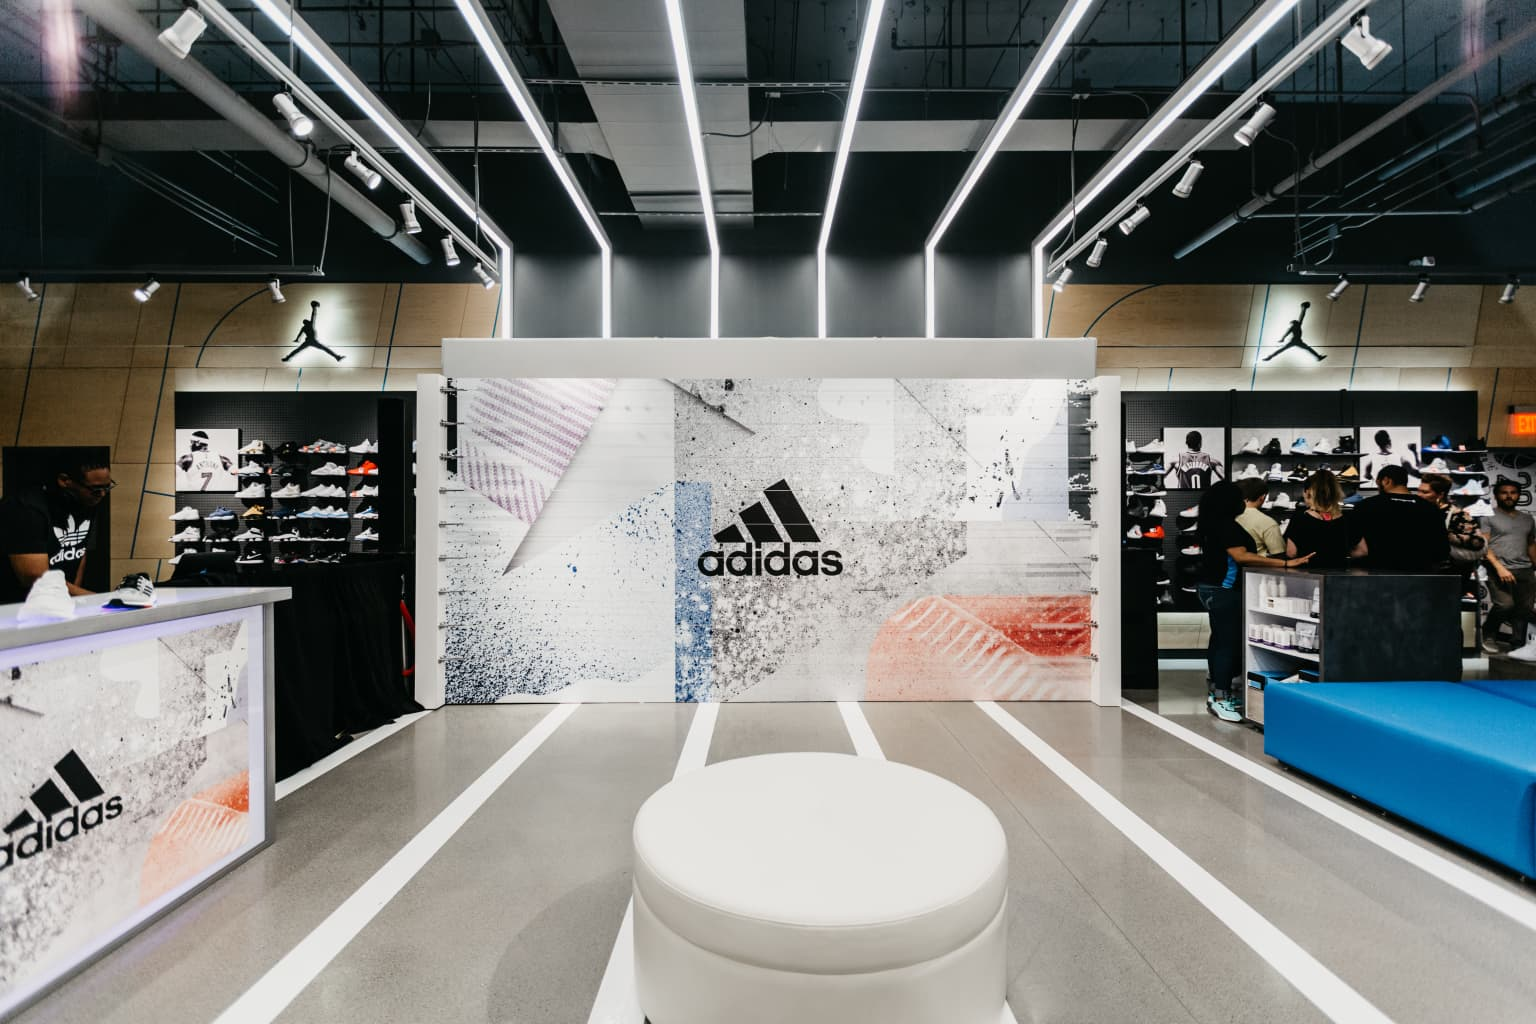 Adidas Finish Line In-Store Activation